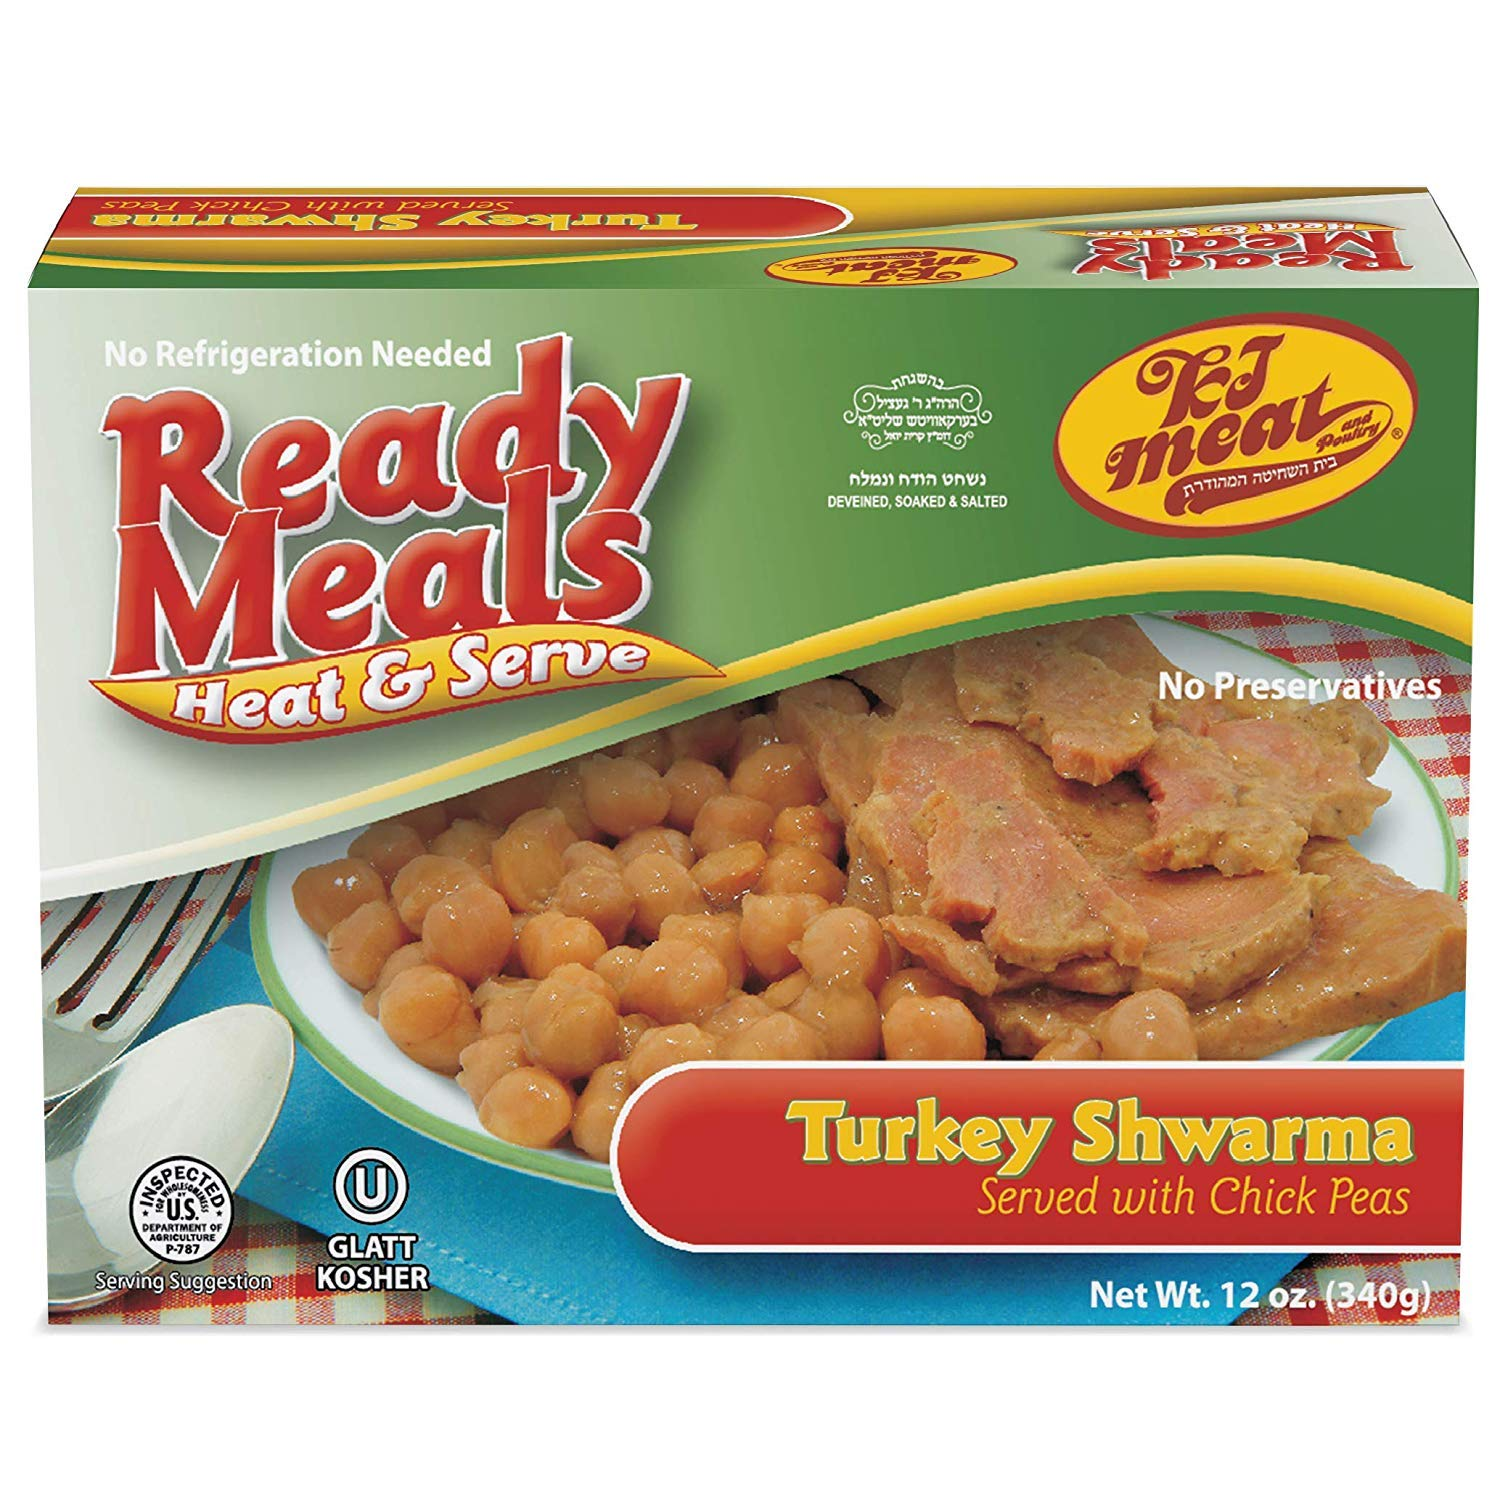 Kosher Meat Meals Ready to Eat, Kosher Turkey Shwarma Served with Chick Peas (Microwavable, Shelf Stable) – Gluten Free, Dairy Free, Egg Free, Glatt Kosher (12 oz, Pack of 1)